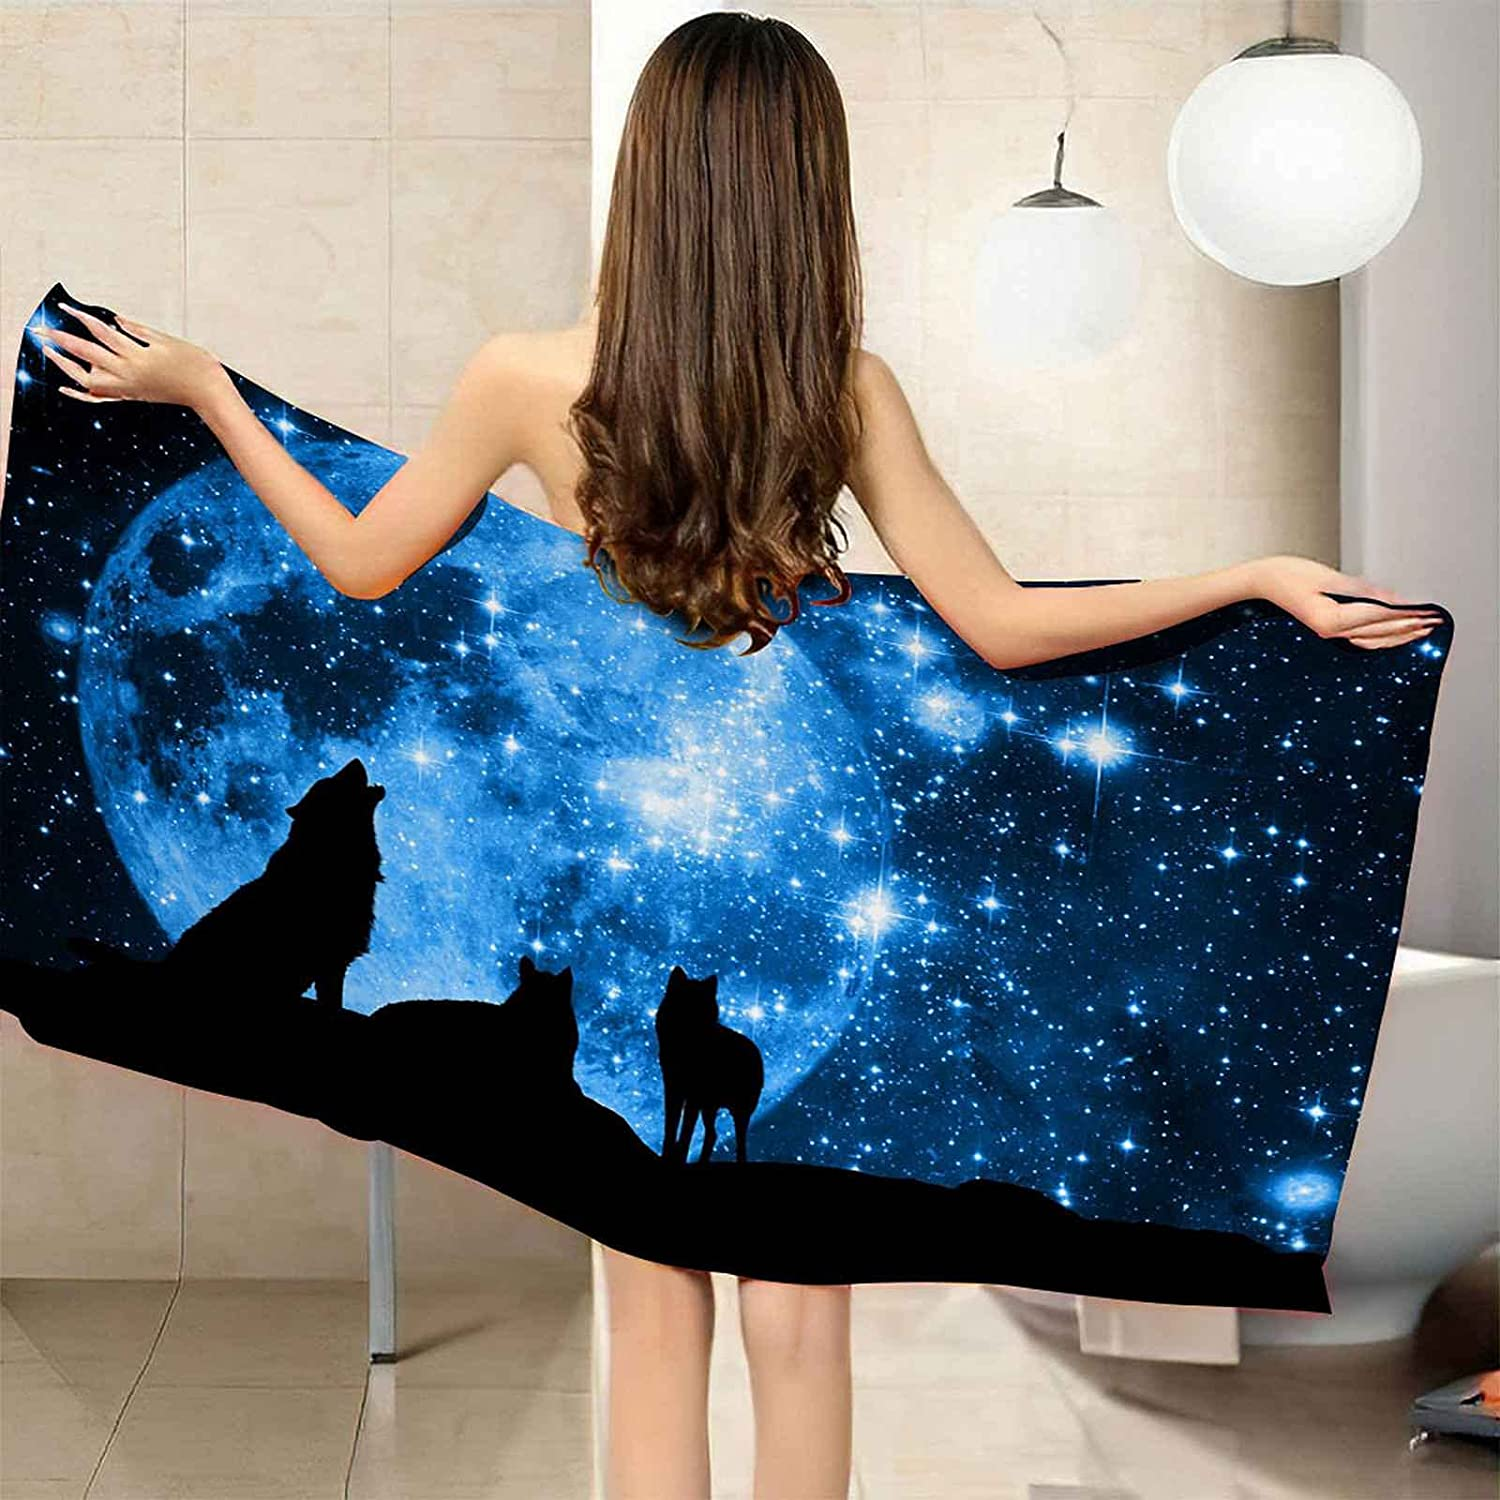 Manufacturer regenerated product TFXDBZ Beach Towels Oversized Towel Travel Sand Oklahoma City Mall Free